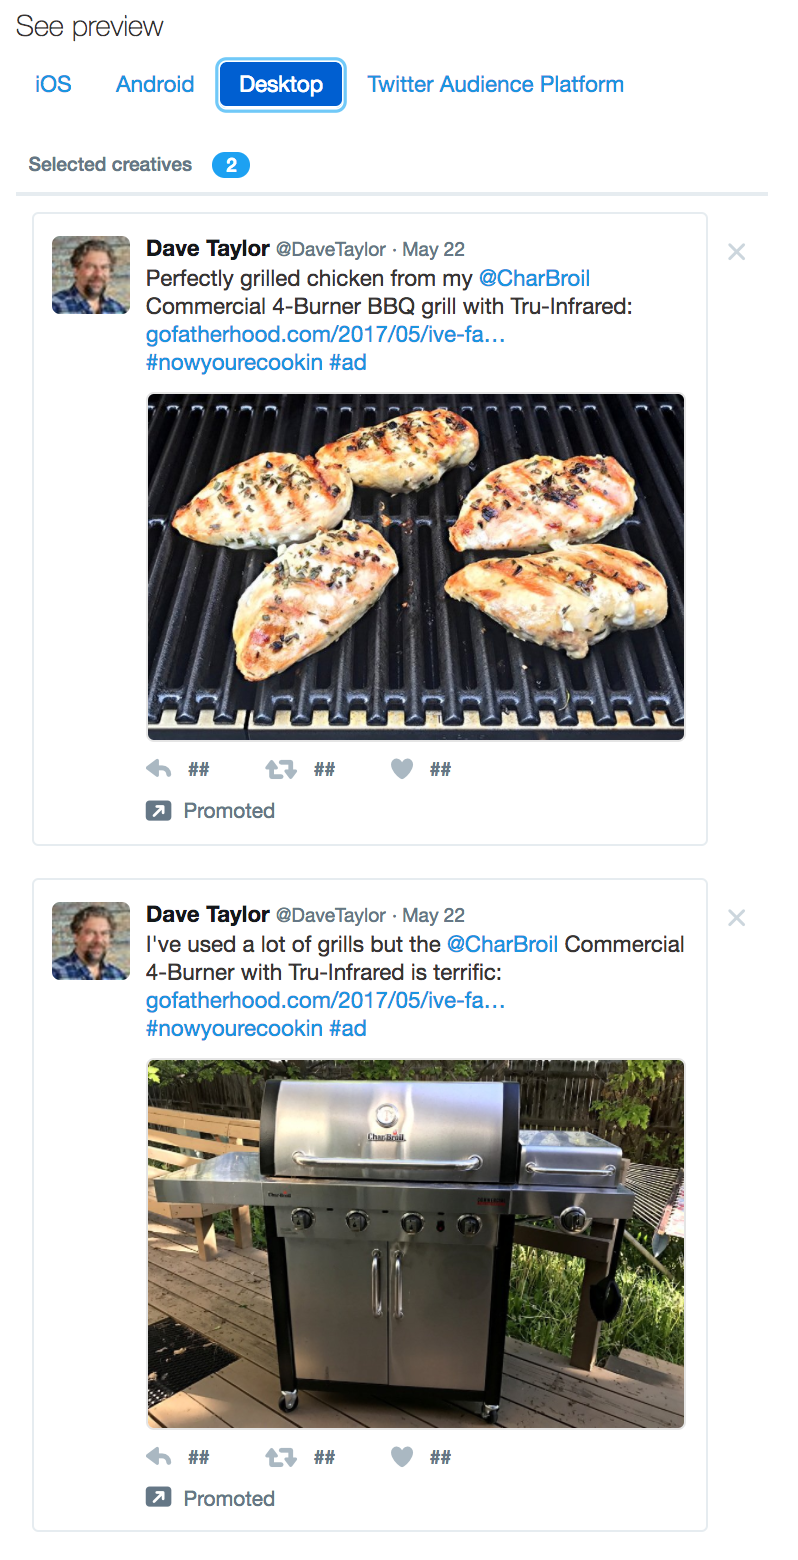 twitter ad ready to launch, two tweets selected